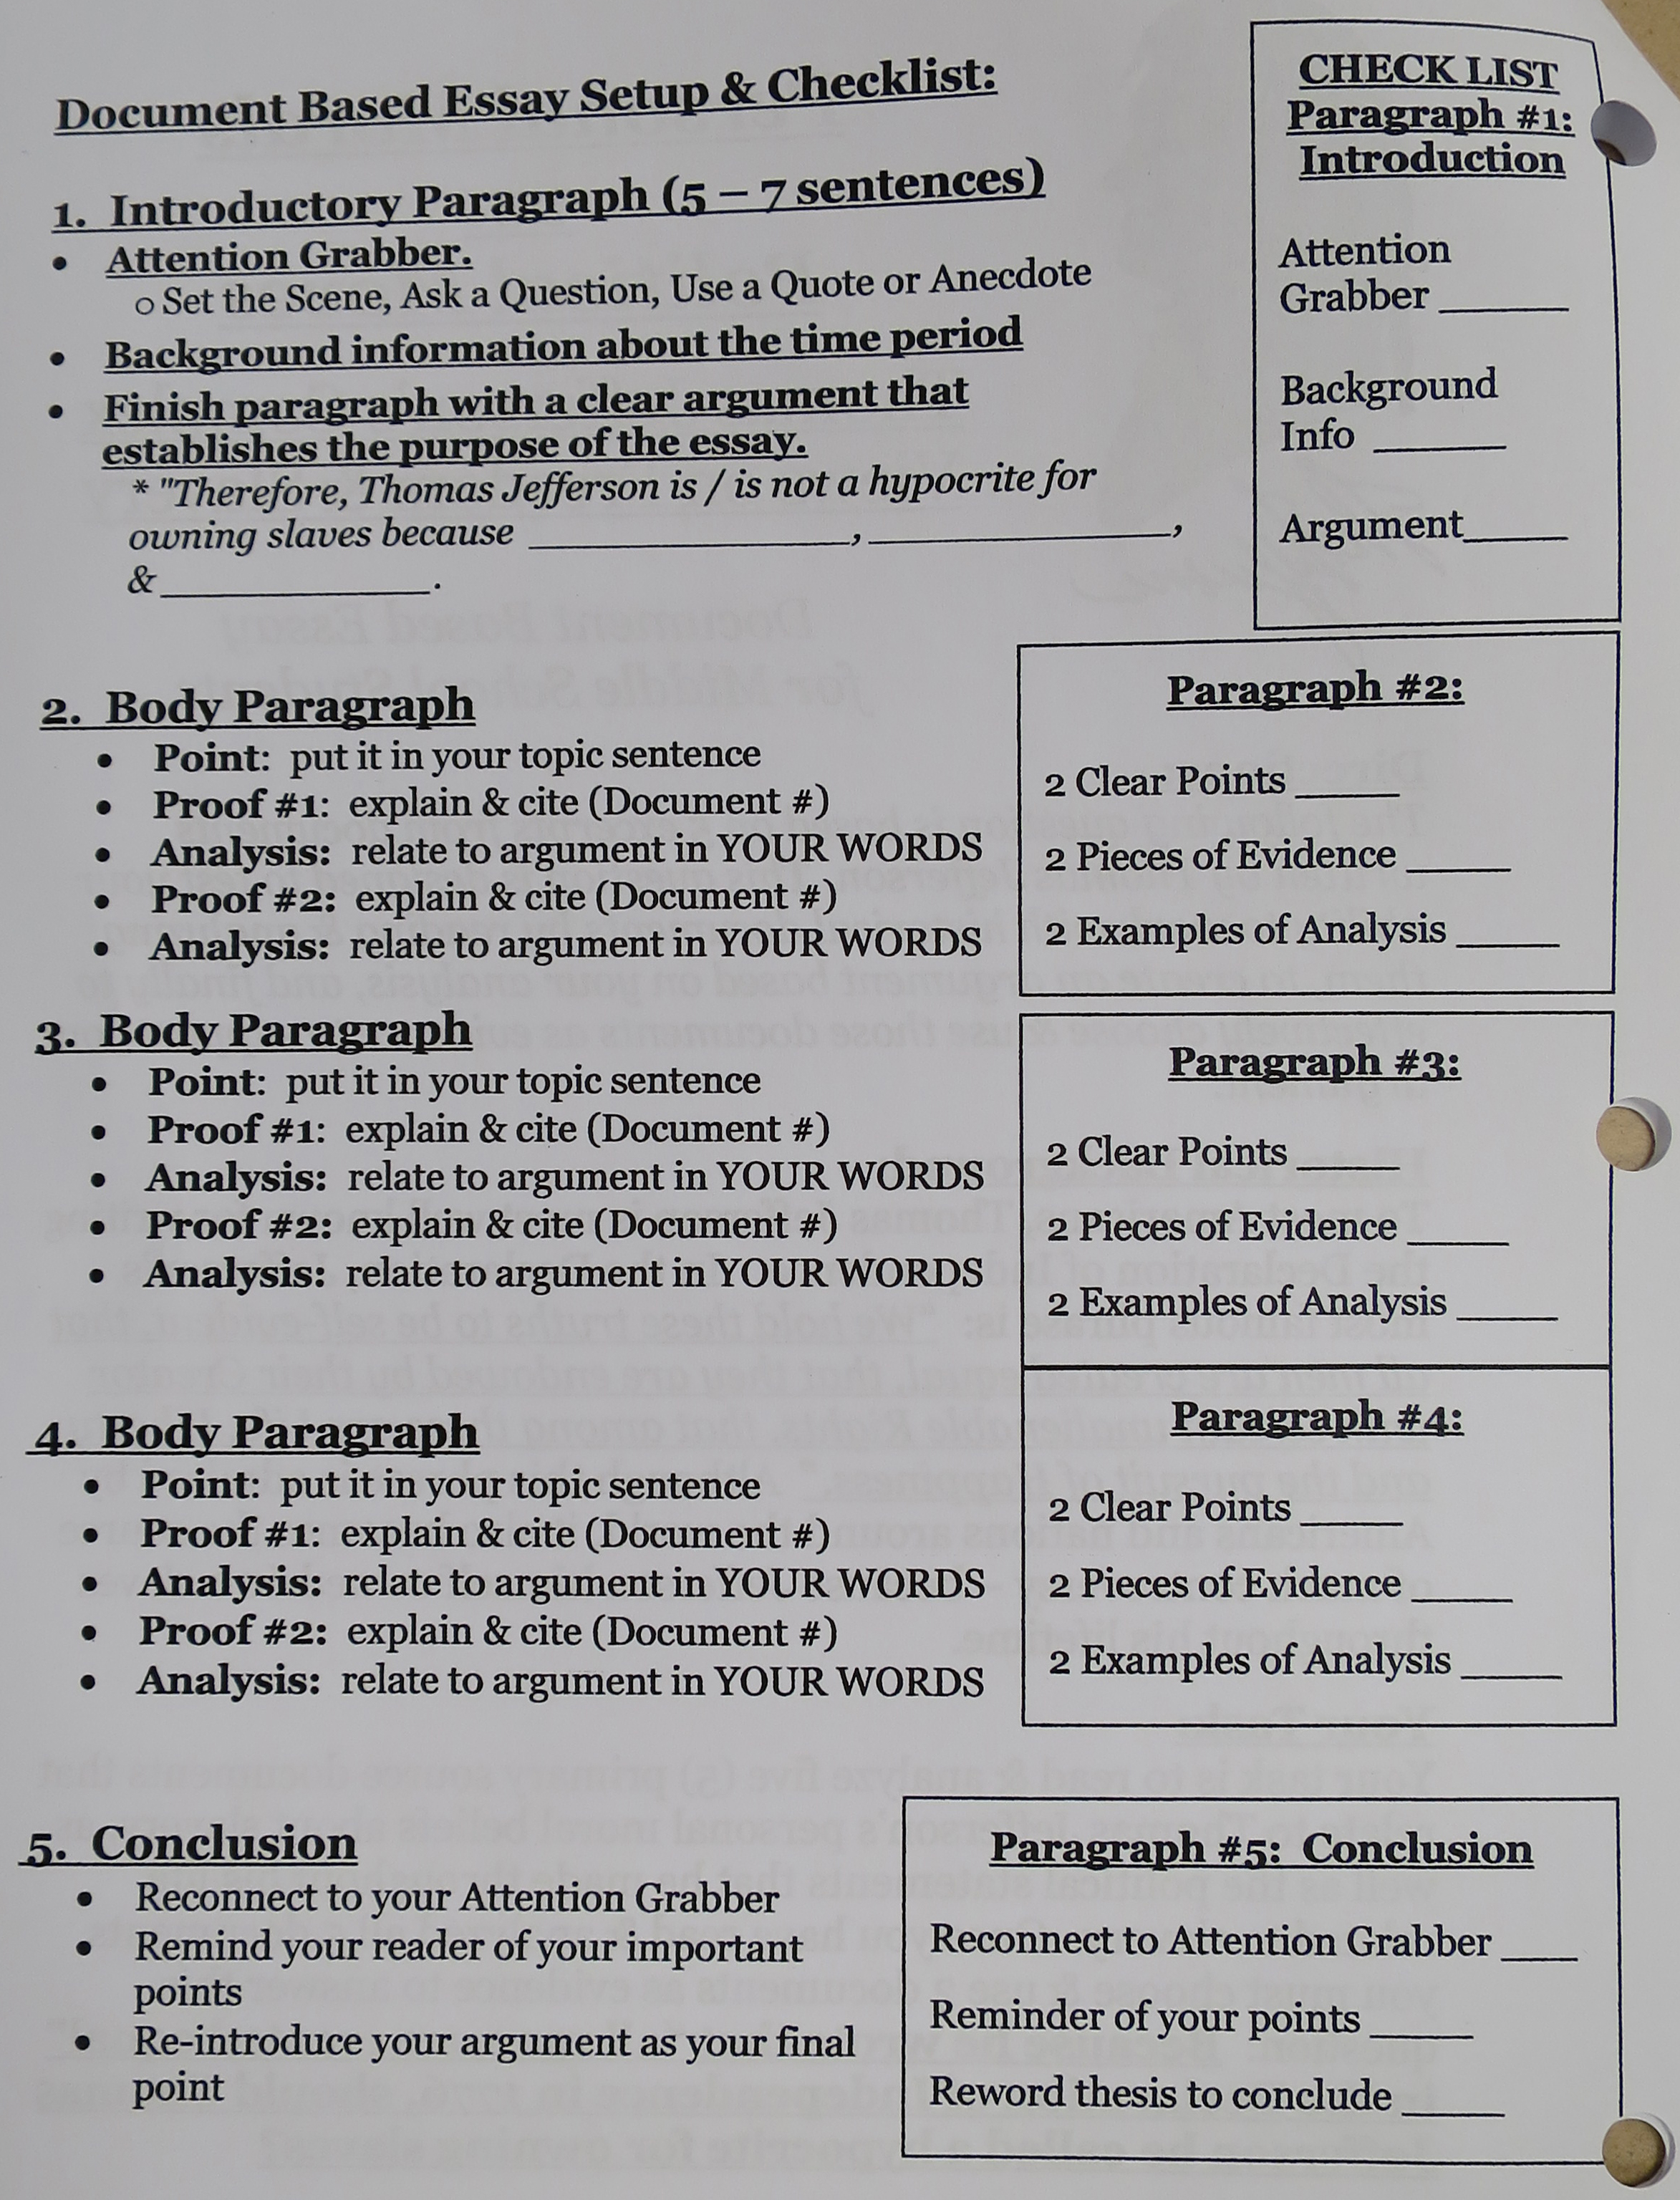 Document based question essay format